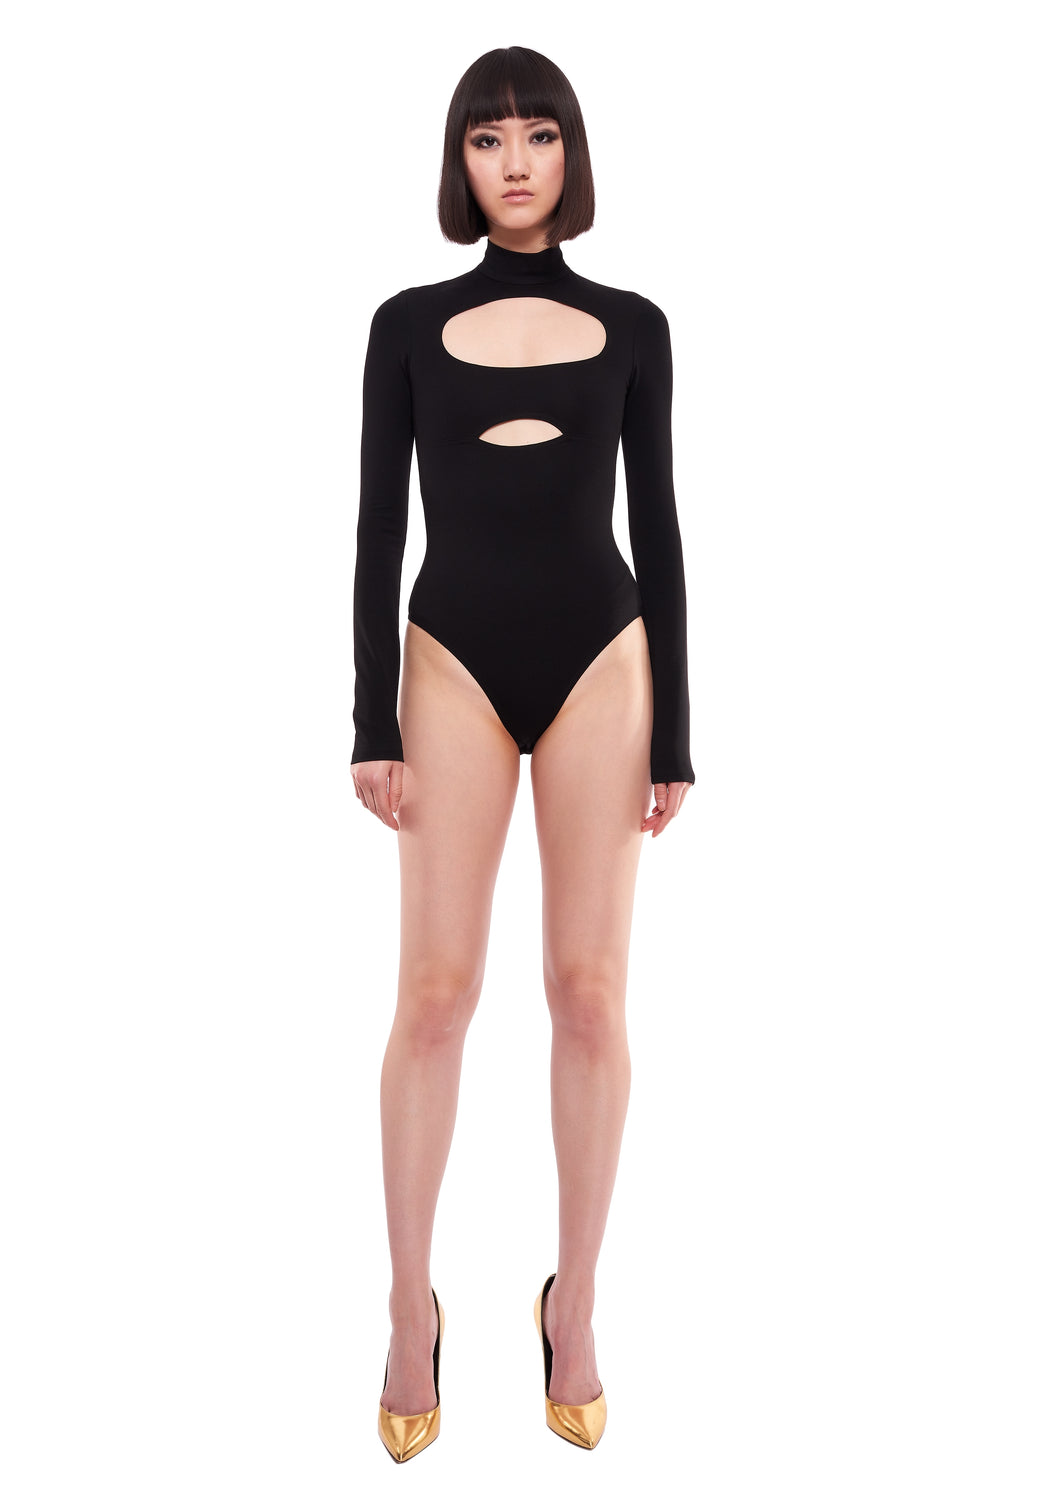 TURTLENECK CUT-OUT BLACK BODY